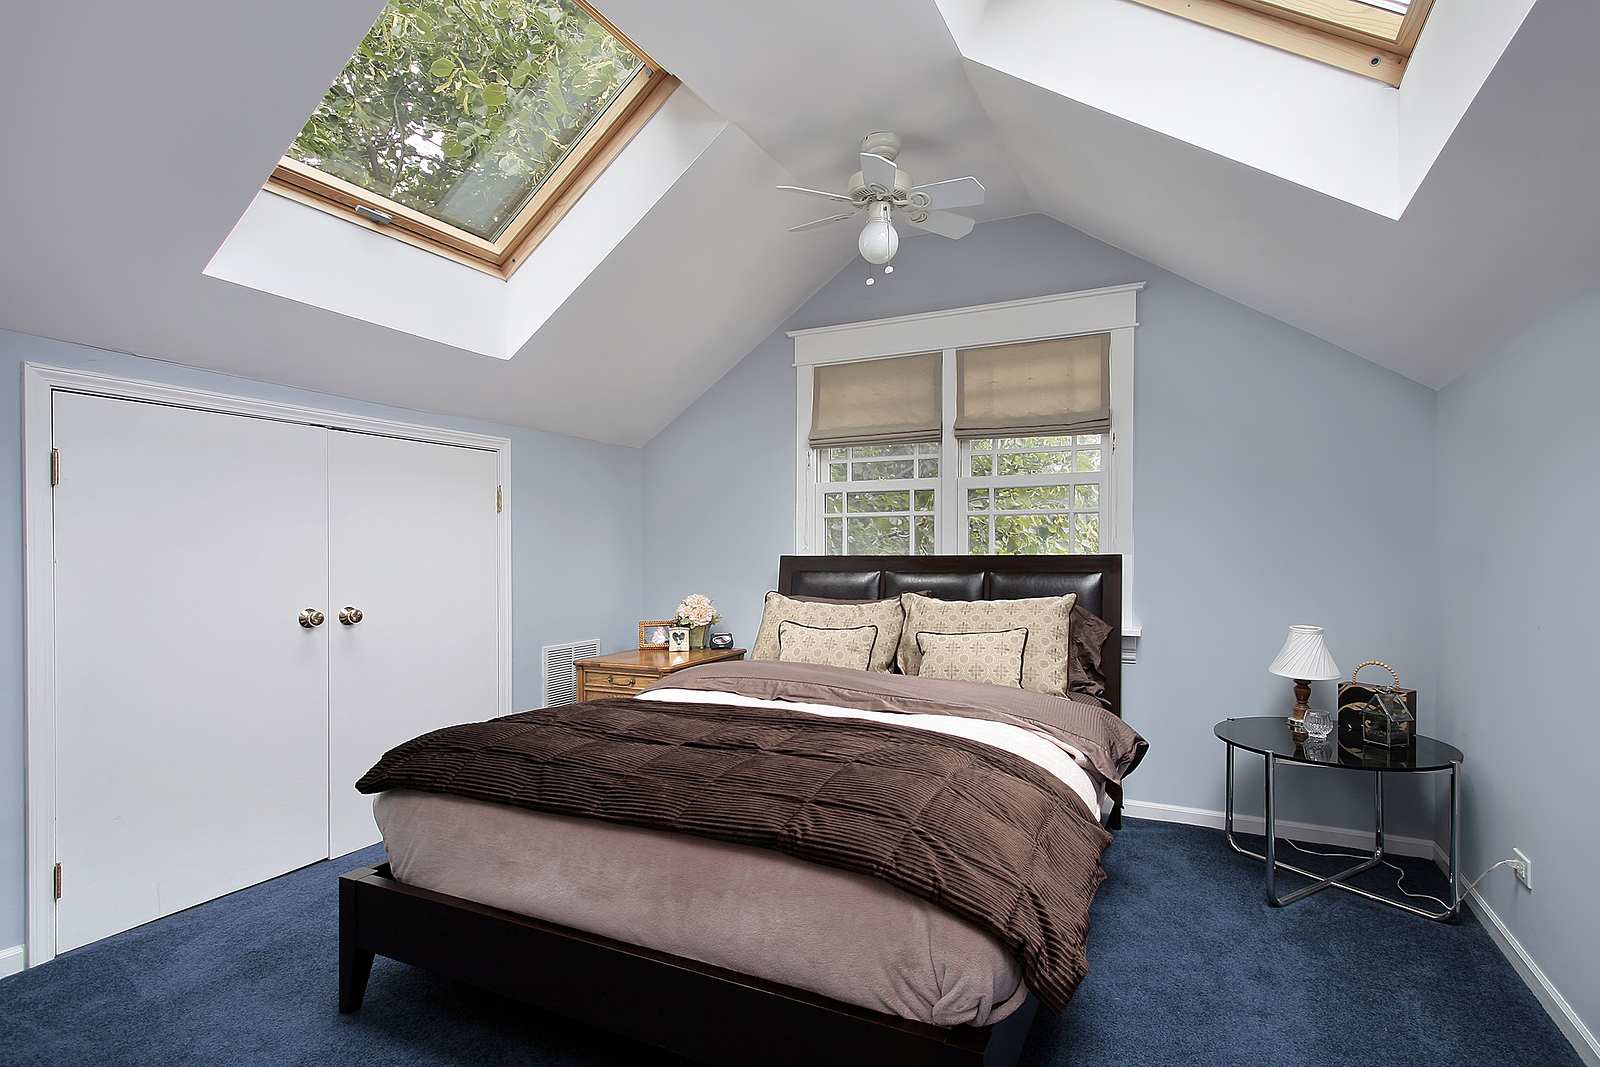 bigstock master bedroom with skylights 7092098 j design